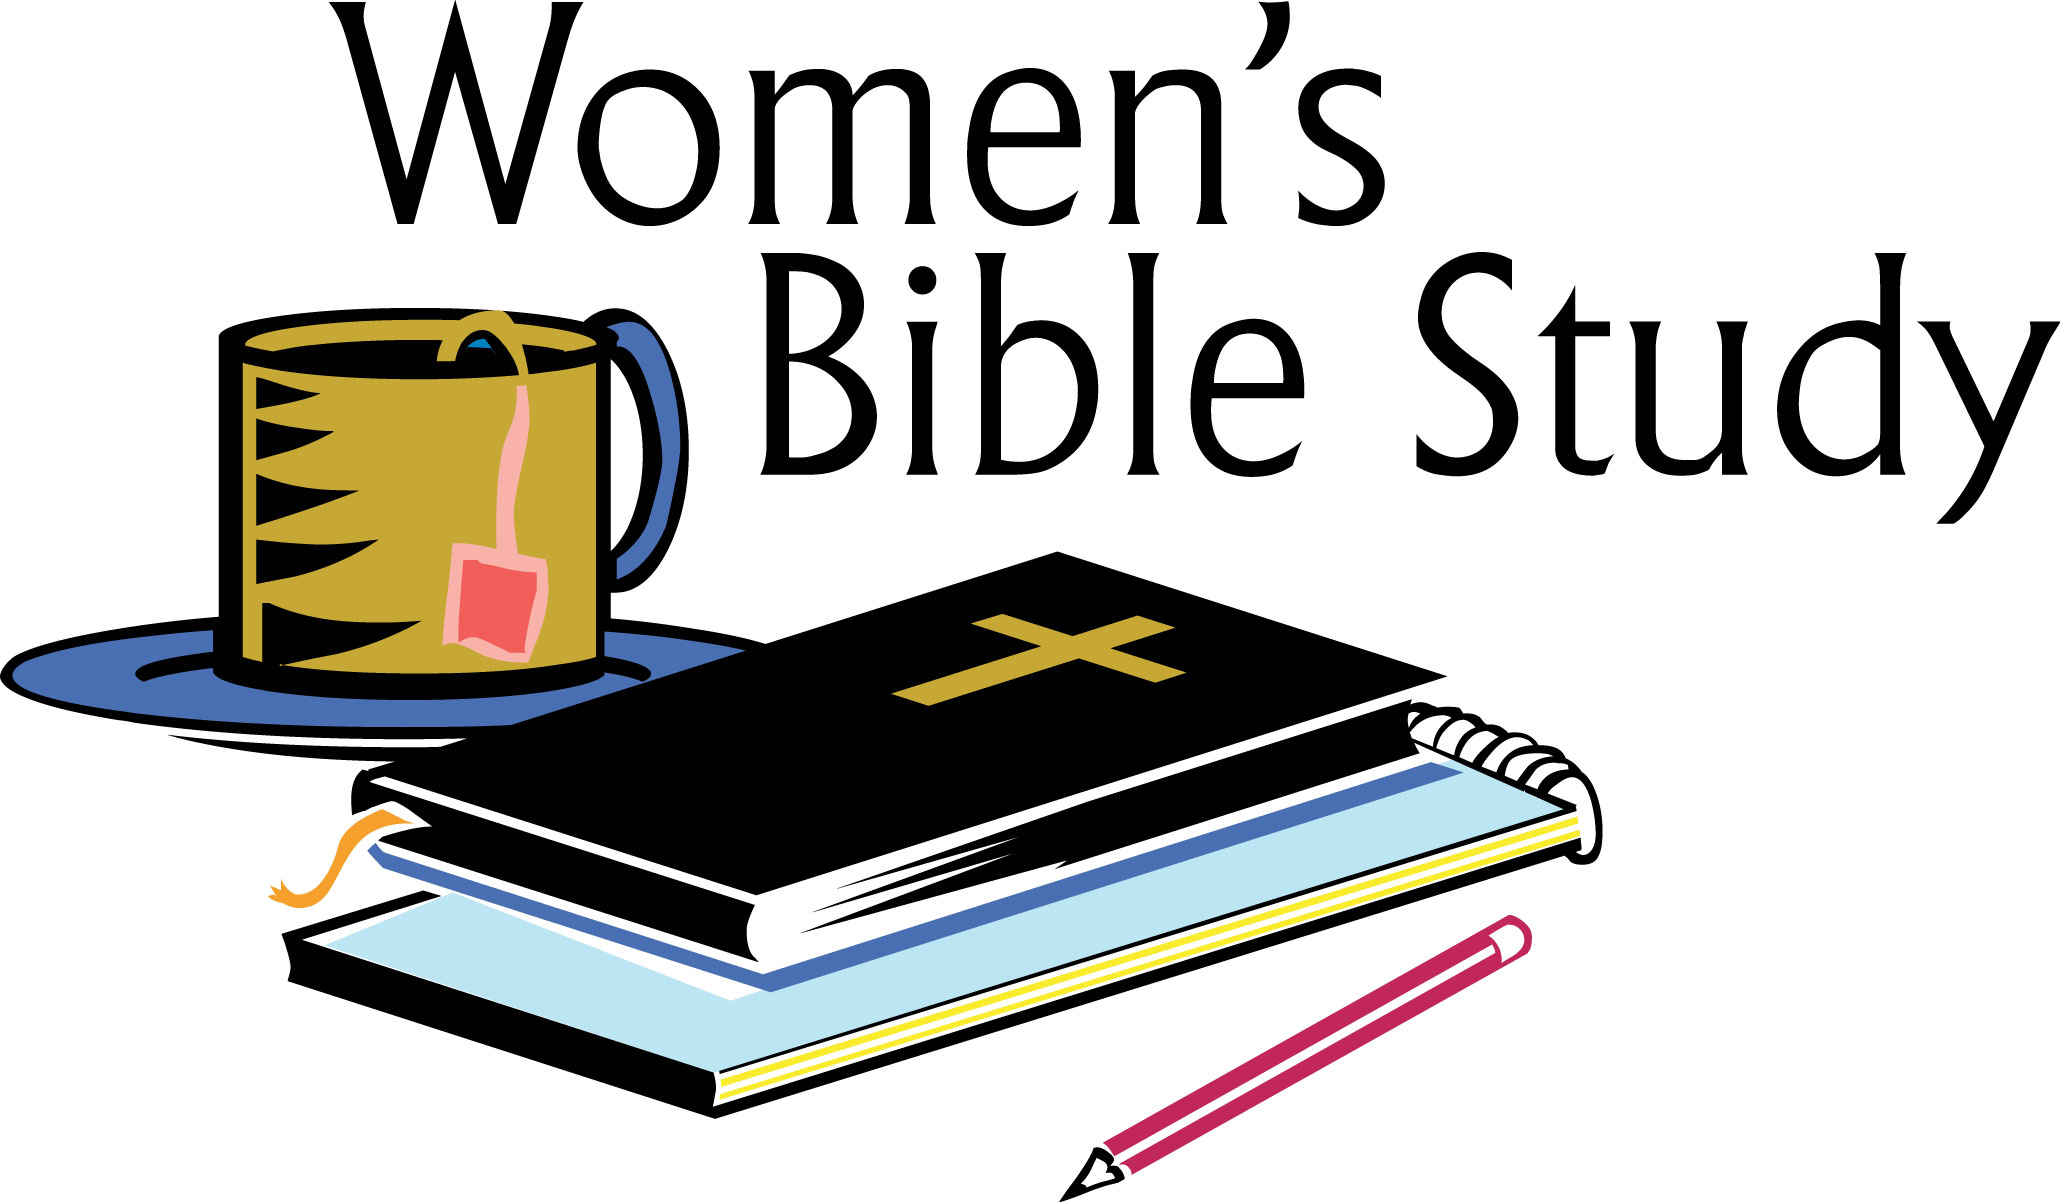 bible study clipart at getdrawings com free for personal use bible rh getdrawings com bible clipart pictures bible clipart ruth